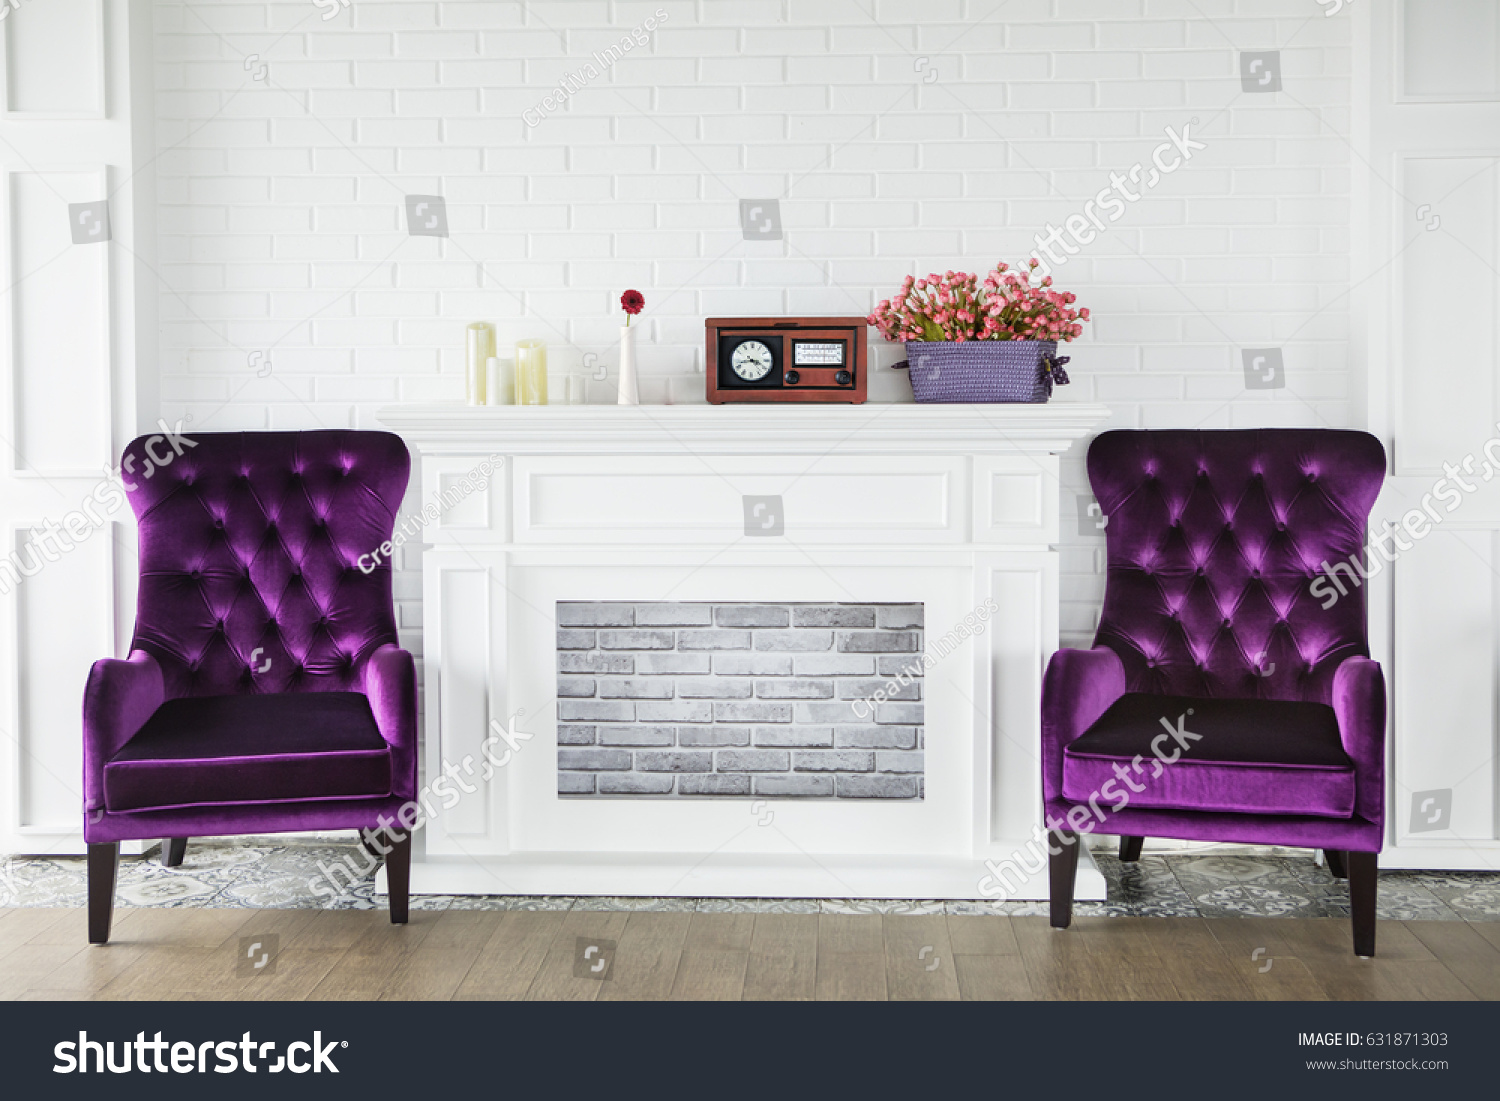 Attractive Image Of Two Purple Armchairs Near A Fireplace With Candles, Radio Player  And Flowers In